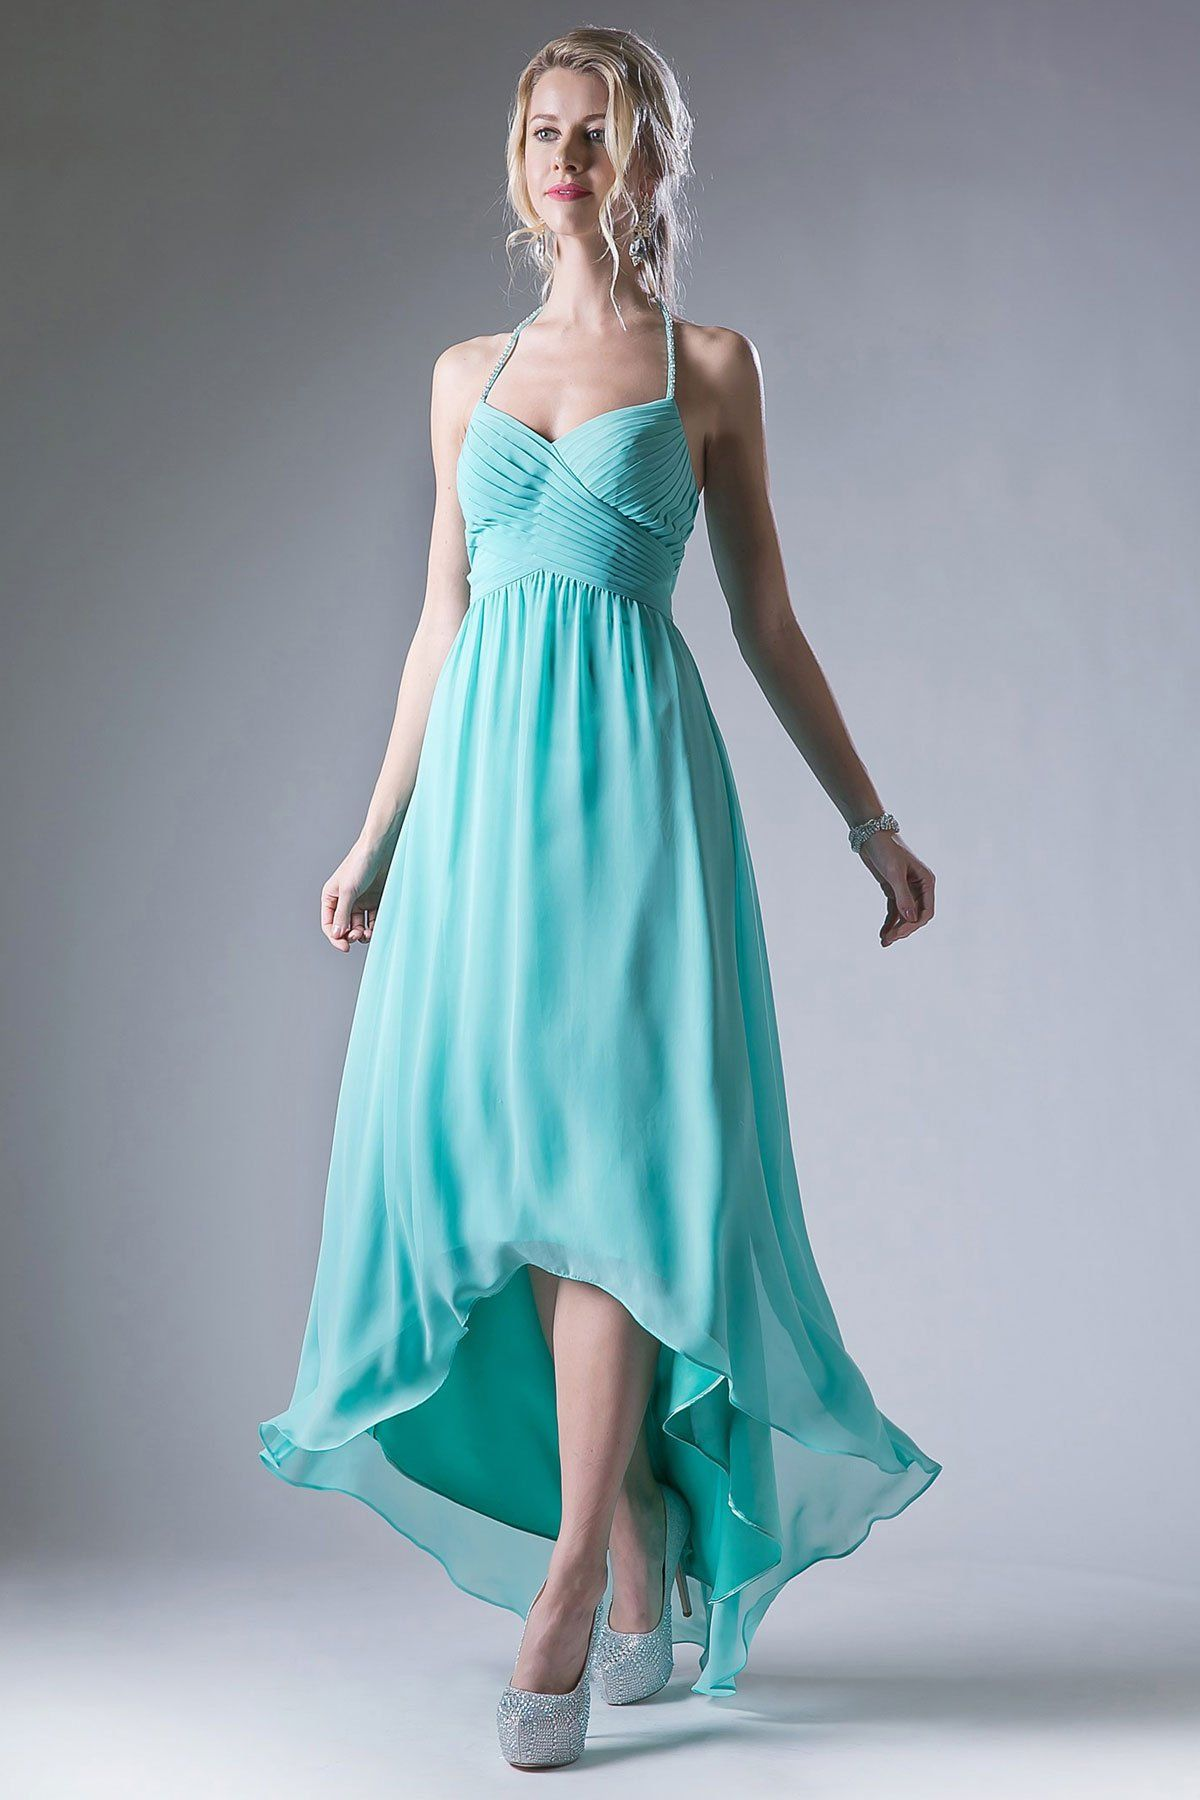 599cf1a204d365 Solid Color Bridesmaid Dress has Pleated Halter Top with Sweetheart  Neckline